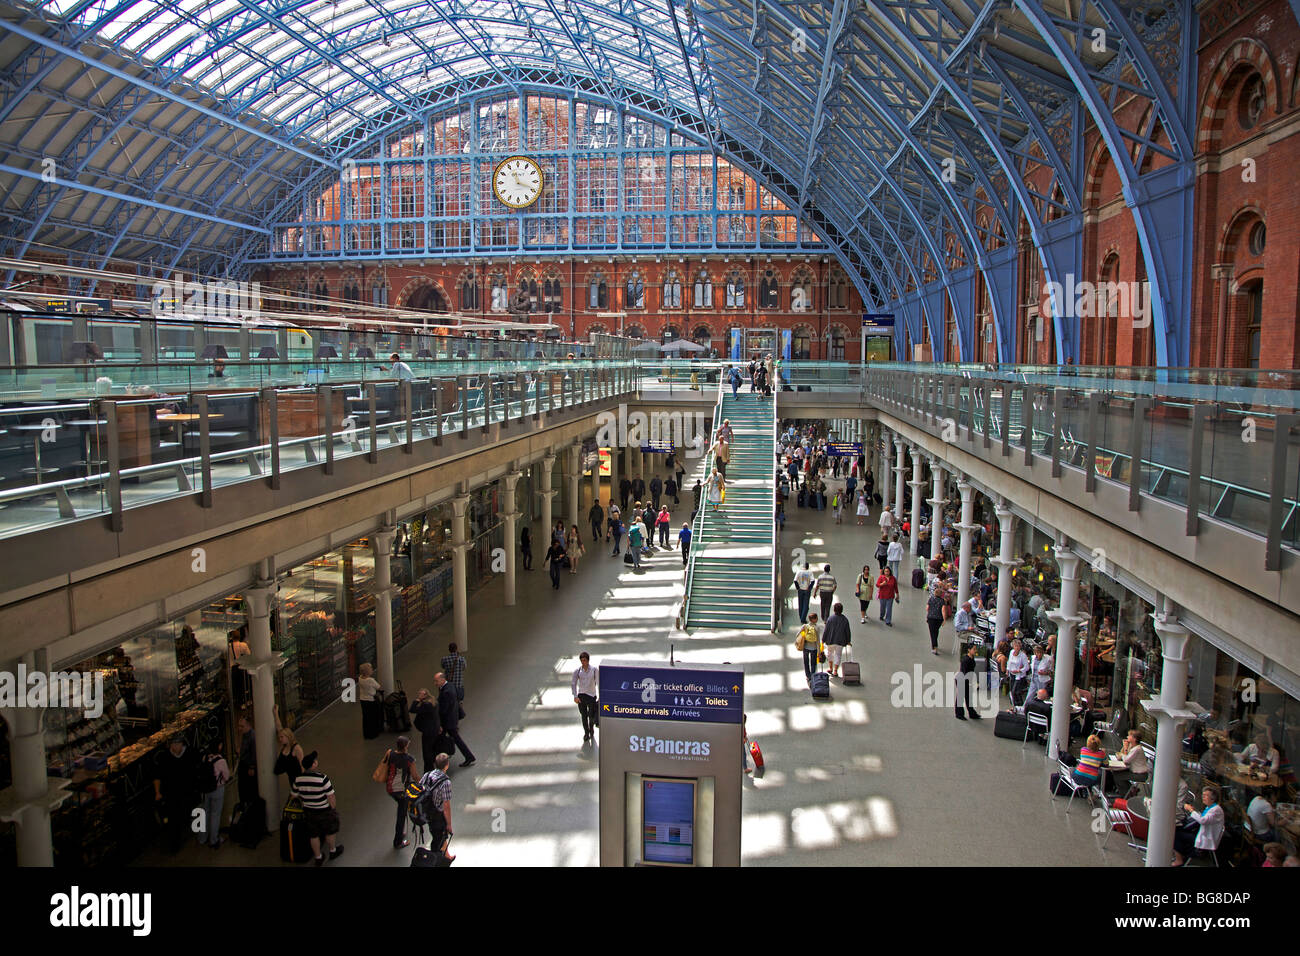 St. Pancras Station, London, England - Stock Image